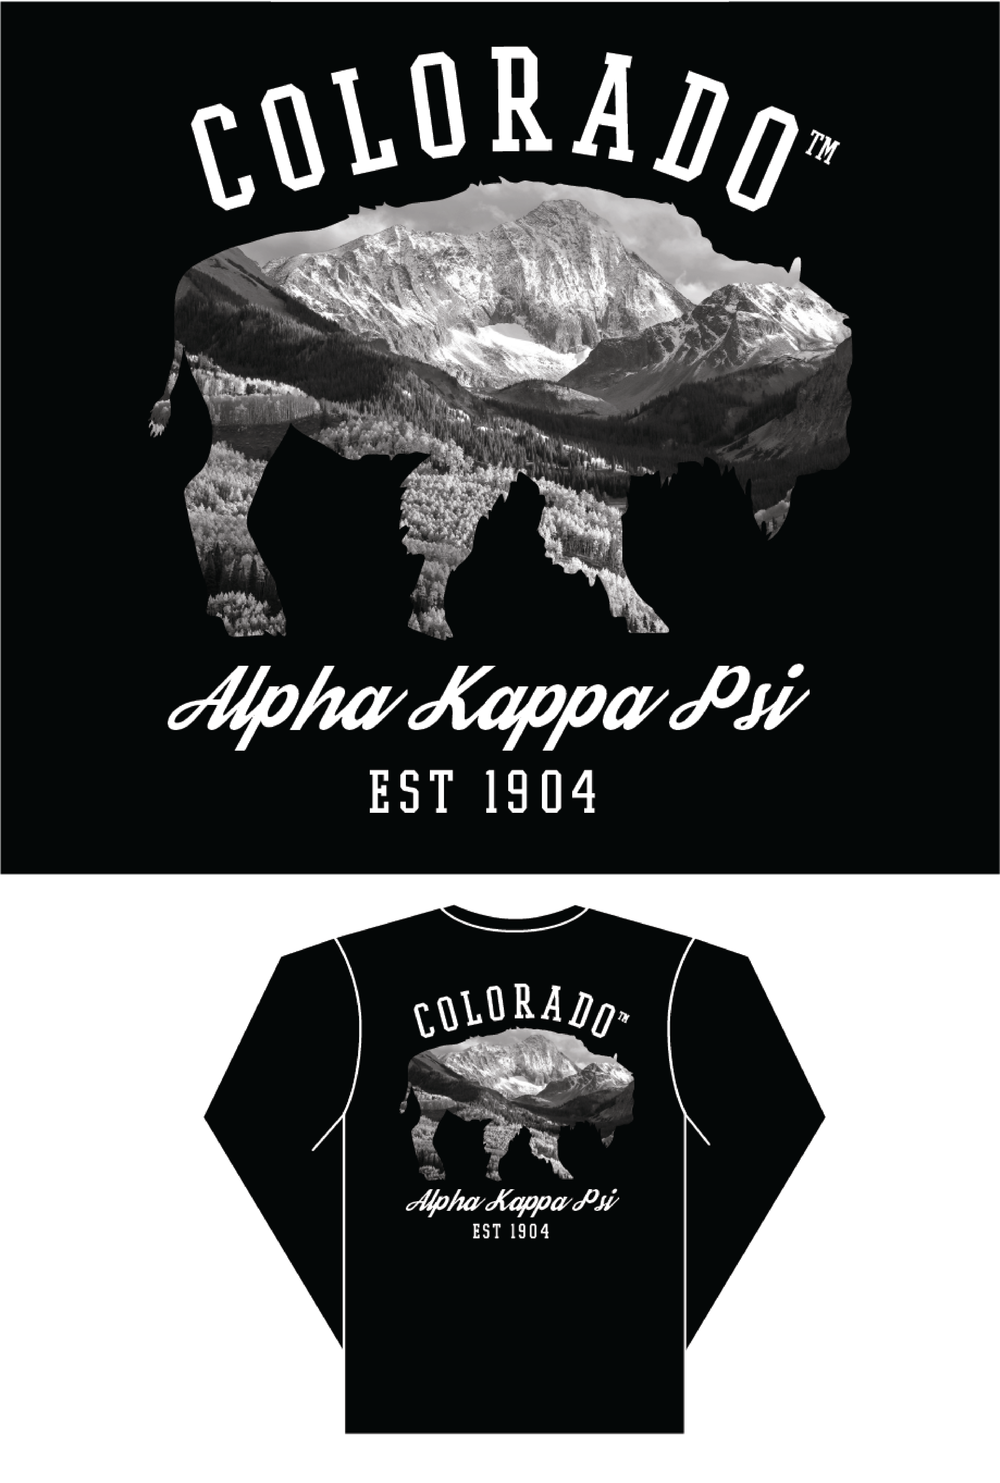 Alpha Kappa Psi, University of Colorado Chapter